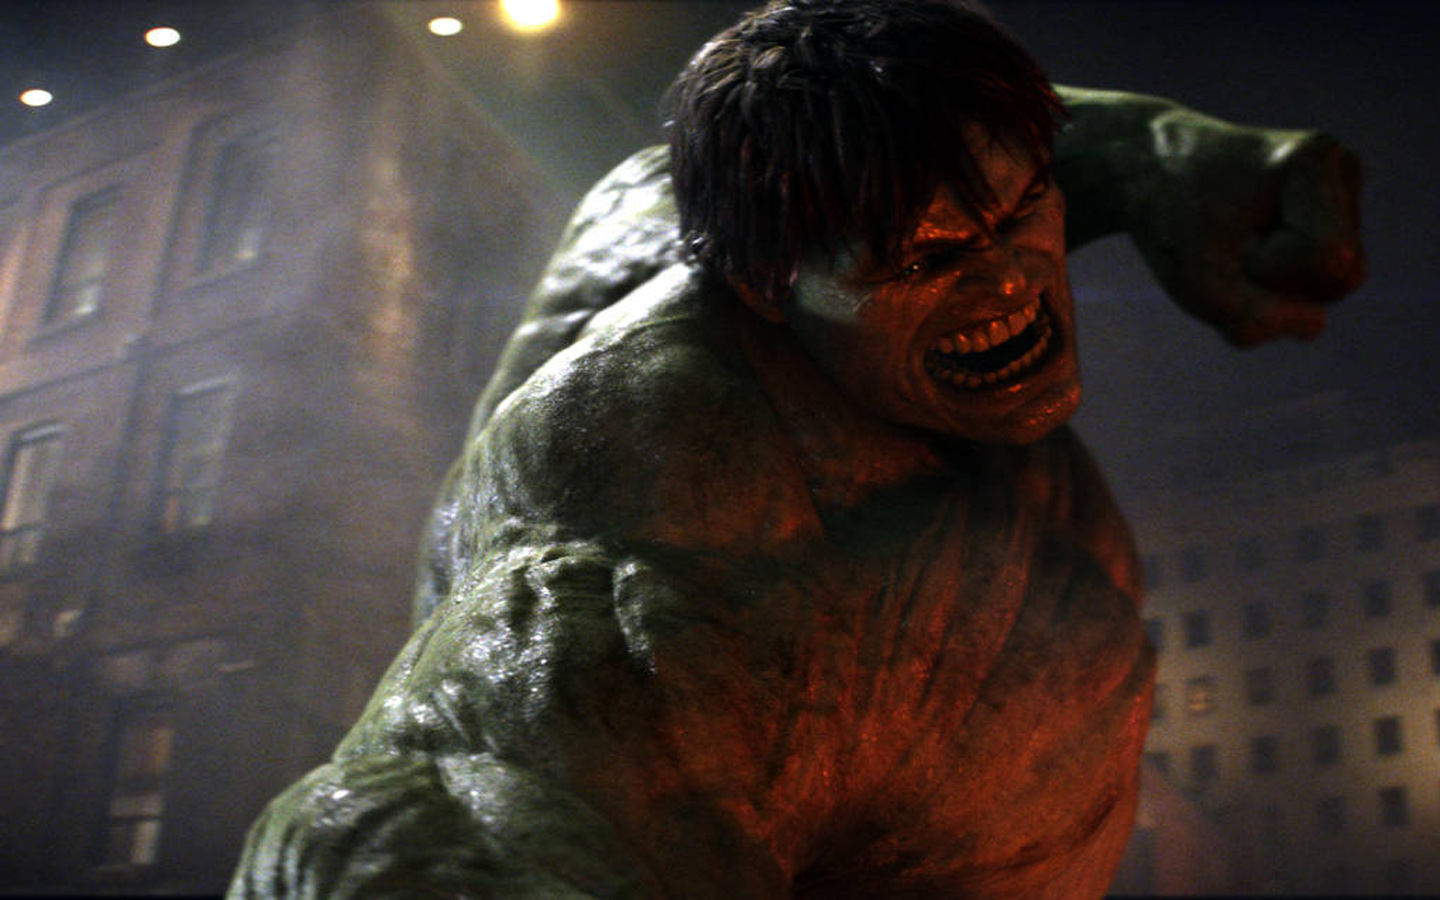 Download image Incredible Hulk Smash Wallpaper PC Android iPhone and 1440x900